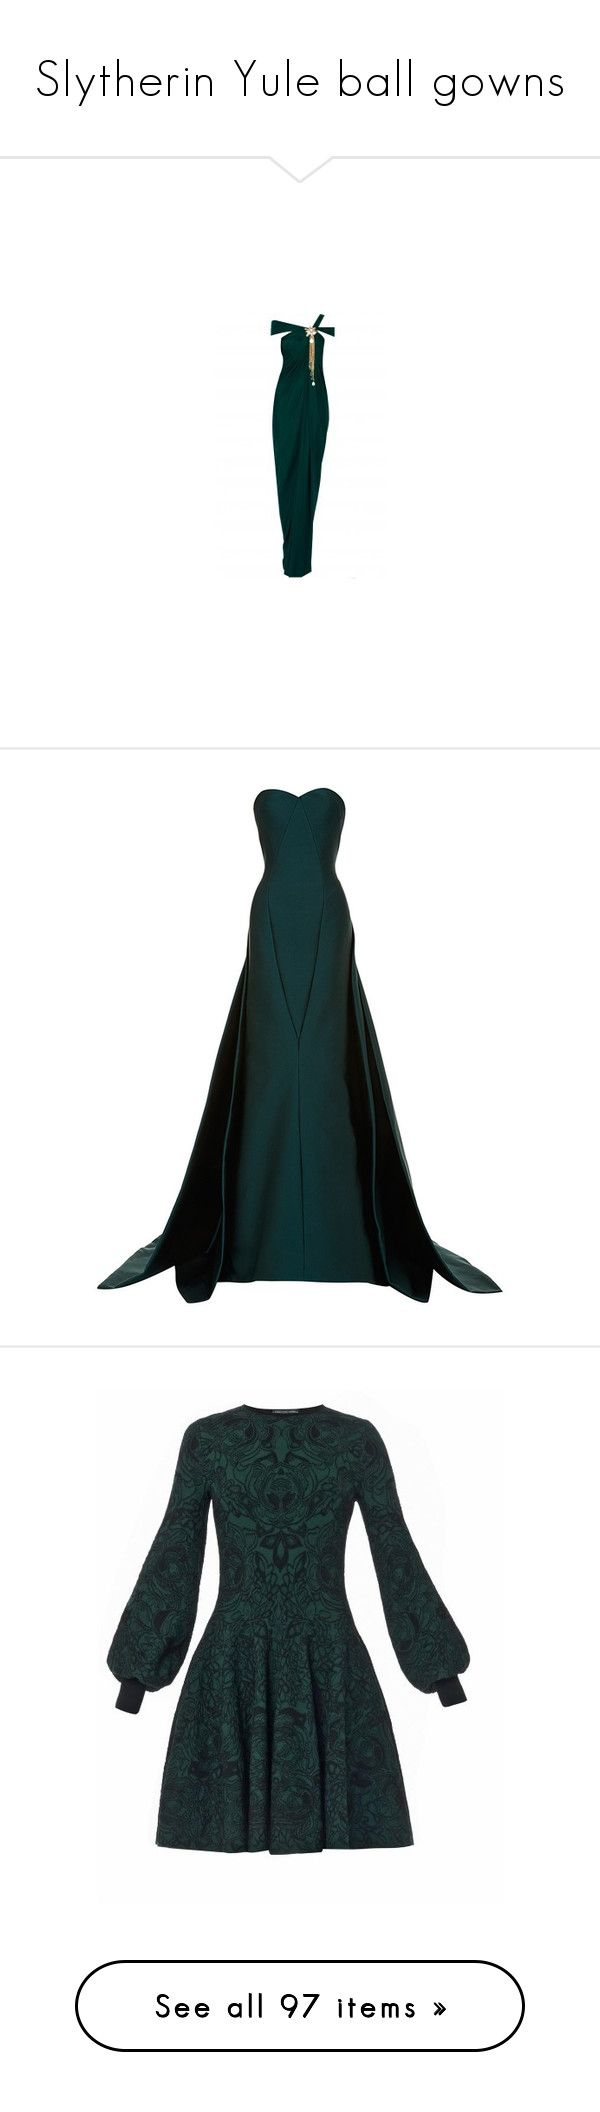 """""""Slytherin Yule ball gowns"""" by weeby ❤ liked on Polyvore featuring dresses, gowns, gown, long dresses, draped evening gown, white drape dress, long white evening dress, white dress, draped dress and emerald gown"""